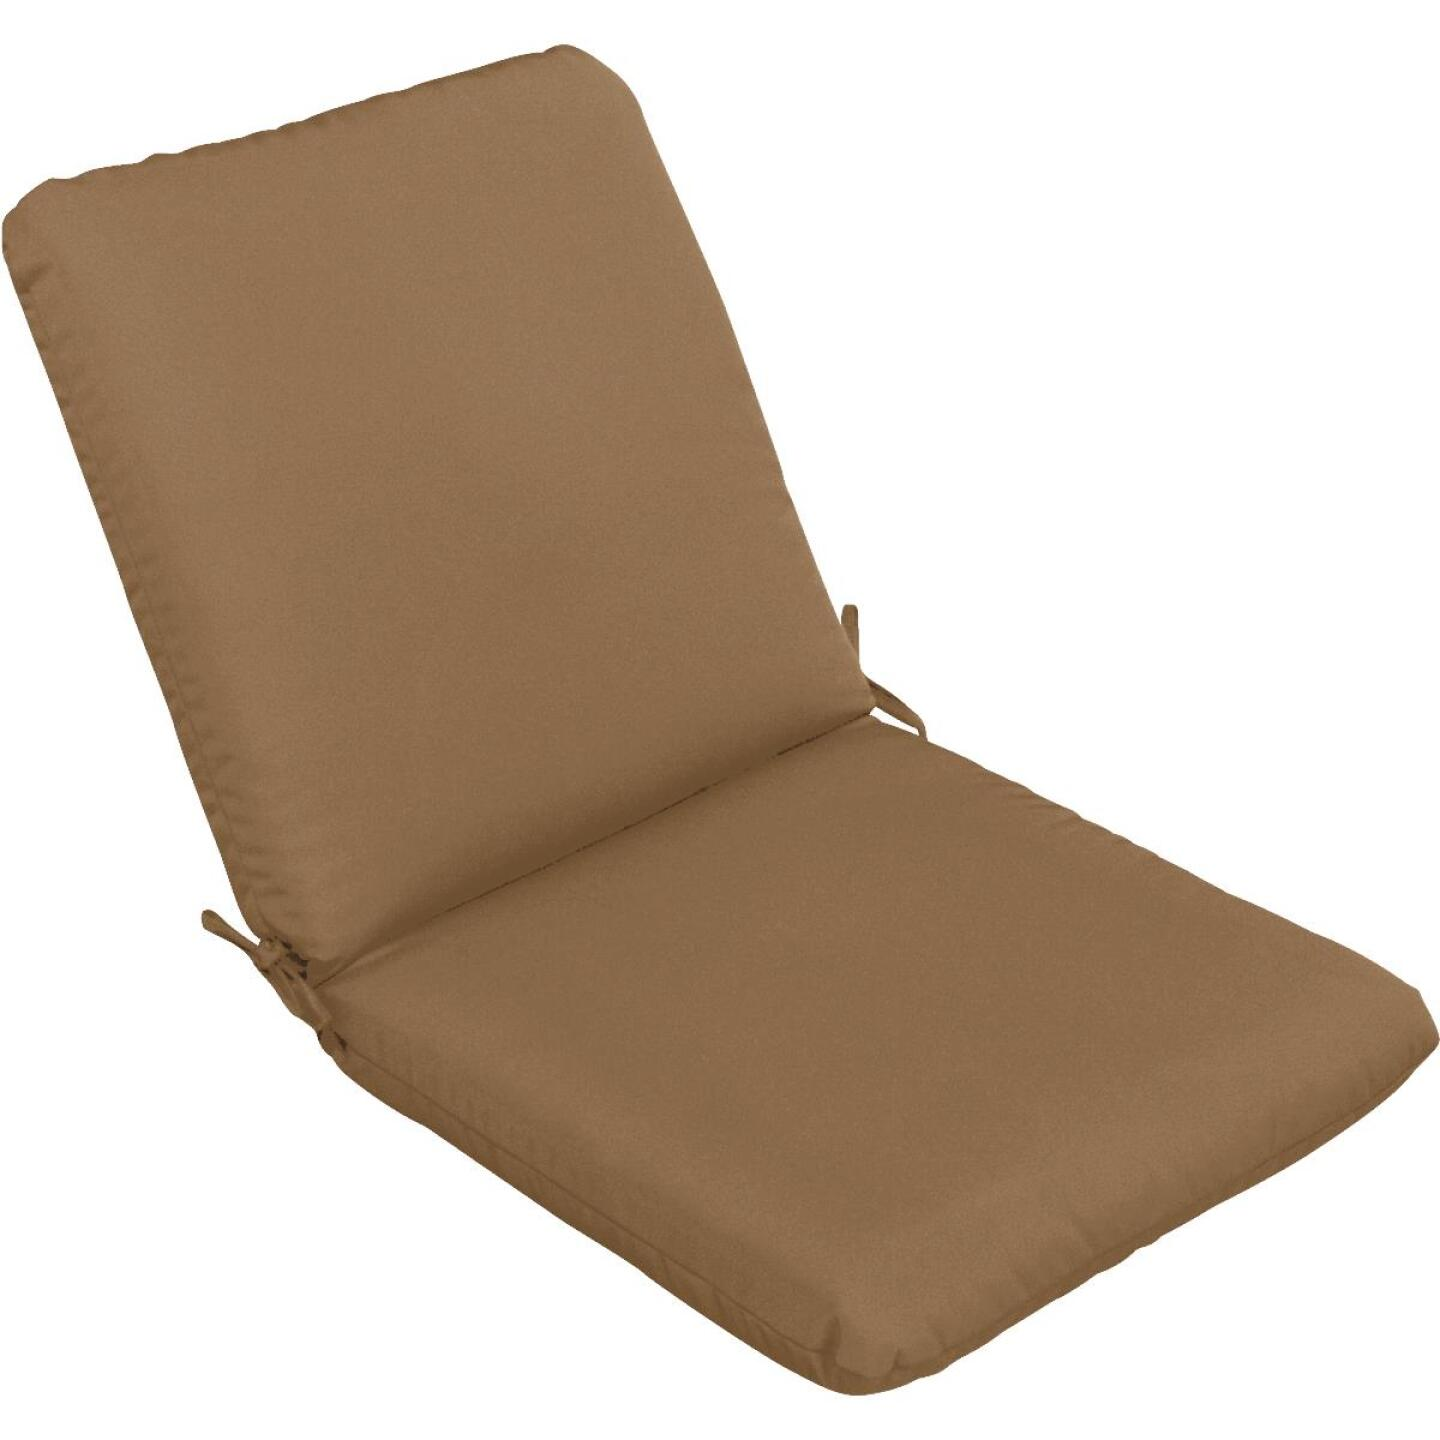 Casual Cushion 23 In. W. x 3.5 In. H. x 44 In. L. Cafe Chair Cushion Image 1